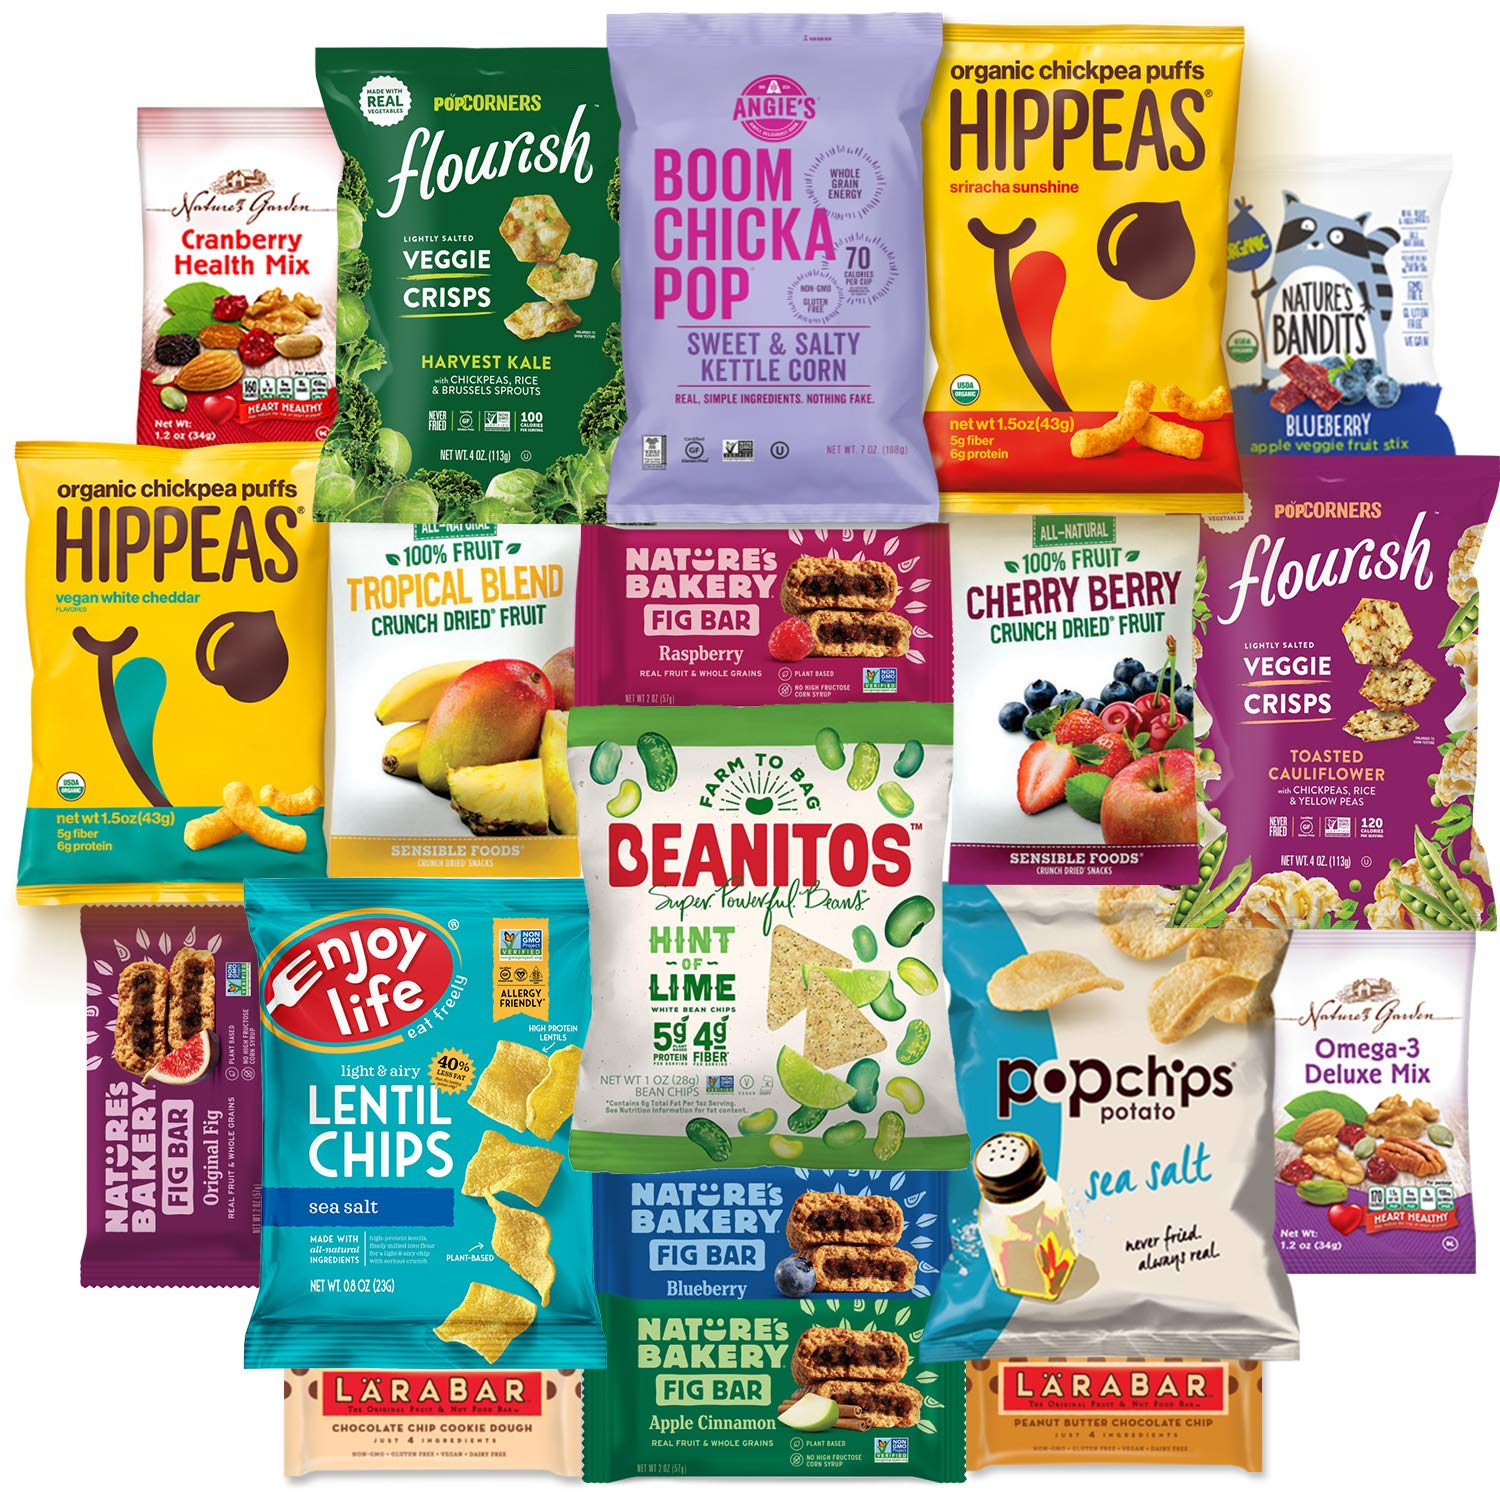 Healthy Vegan Snacks Care Package Snack Gift Box (20 Count) : Mixed Premium Set of Nuts, Bars, Chips, Chickpeas and Fruit Snacks - Multiple Flavors Sampler Variety Pack